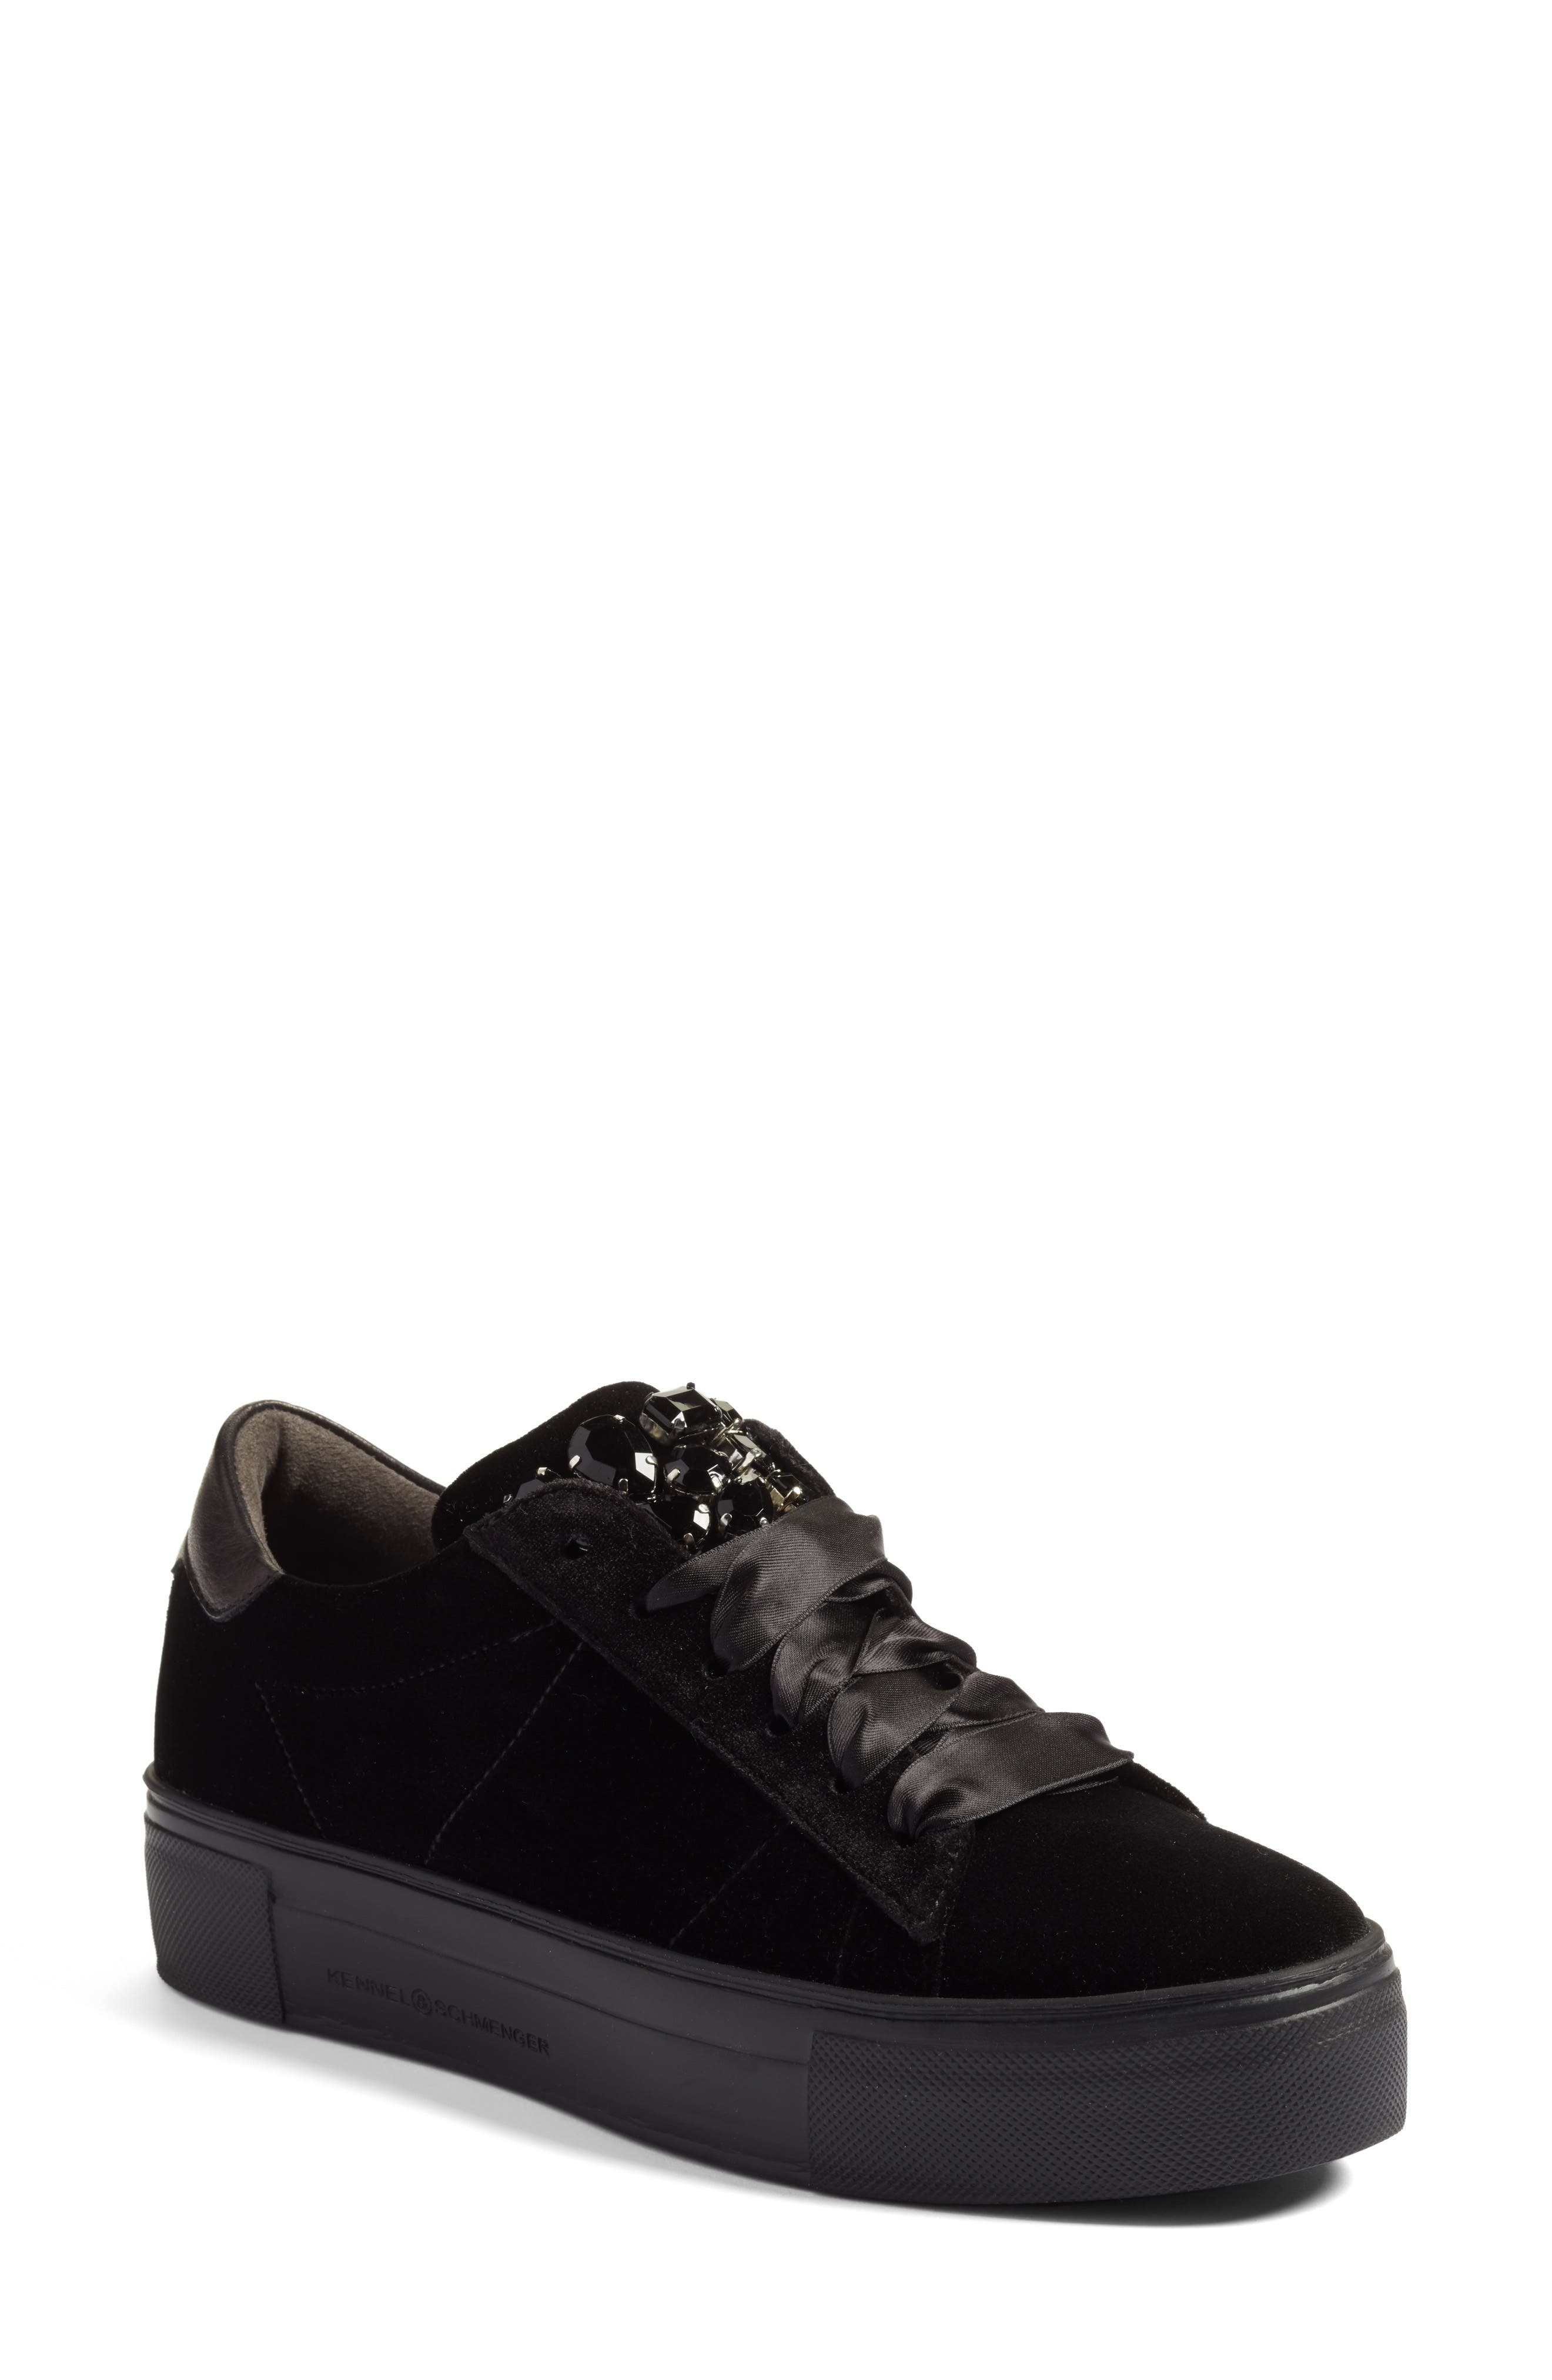 Main Image - Kennel & Schmenger Big Velvet Lace-Up Sneaker (Women)